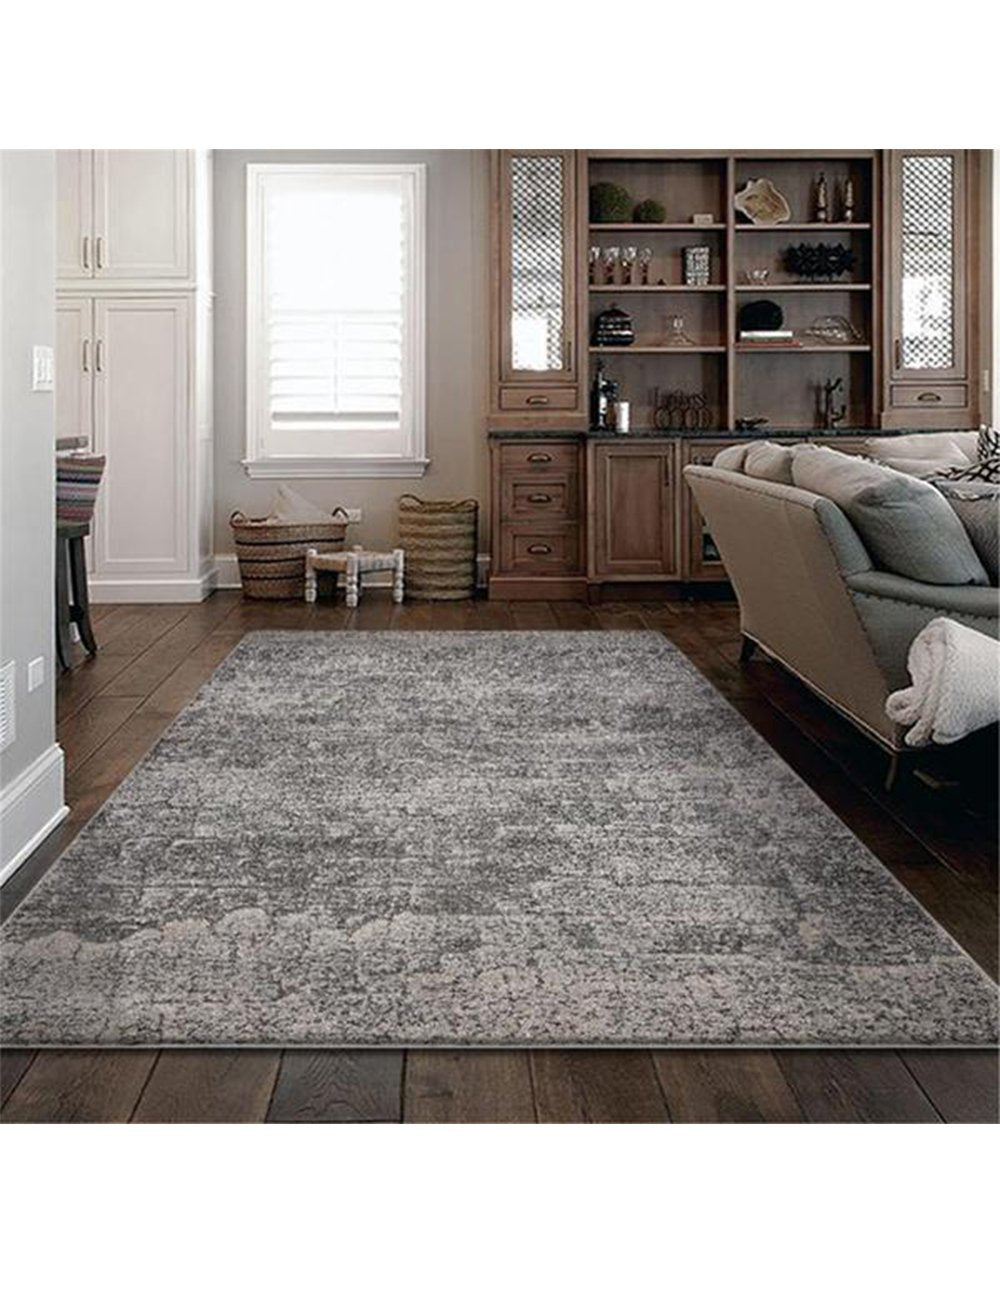 Opulence 707 Turkish Granite Rug - decorstore